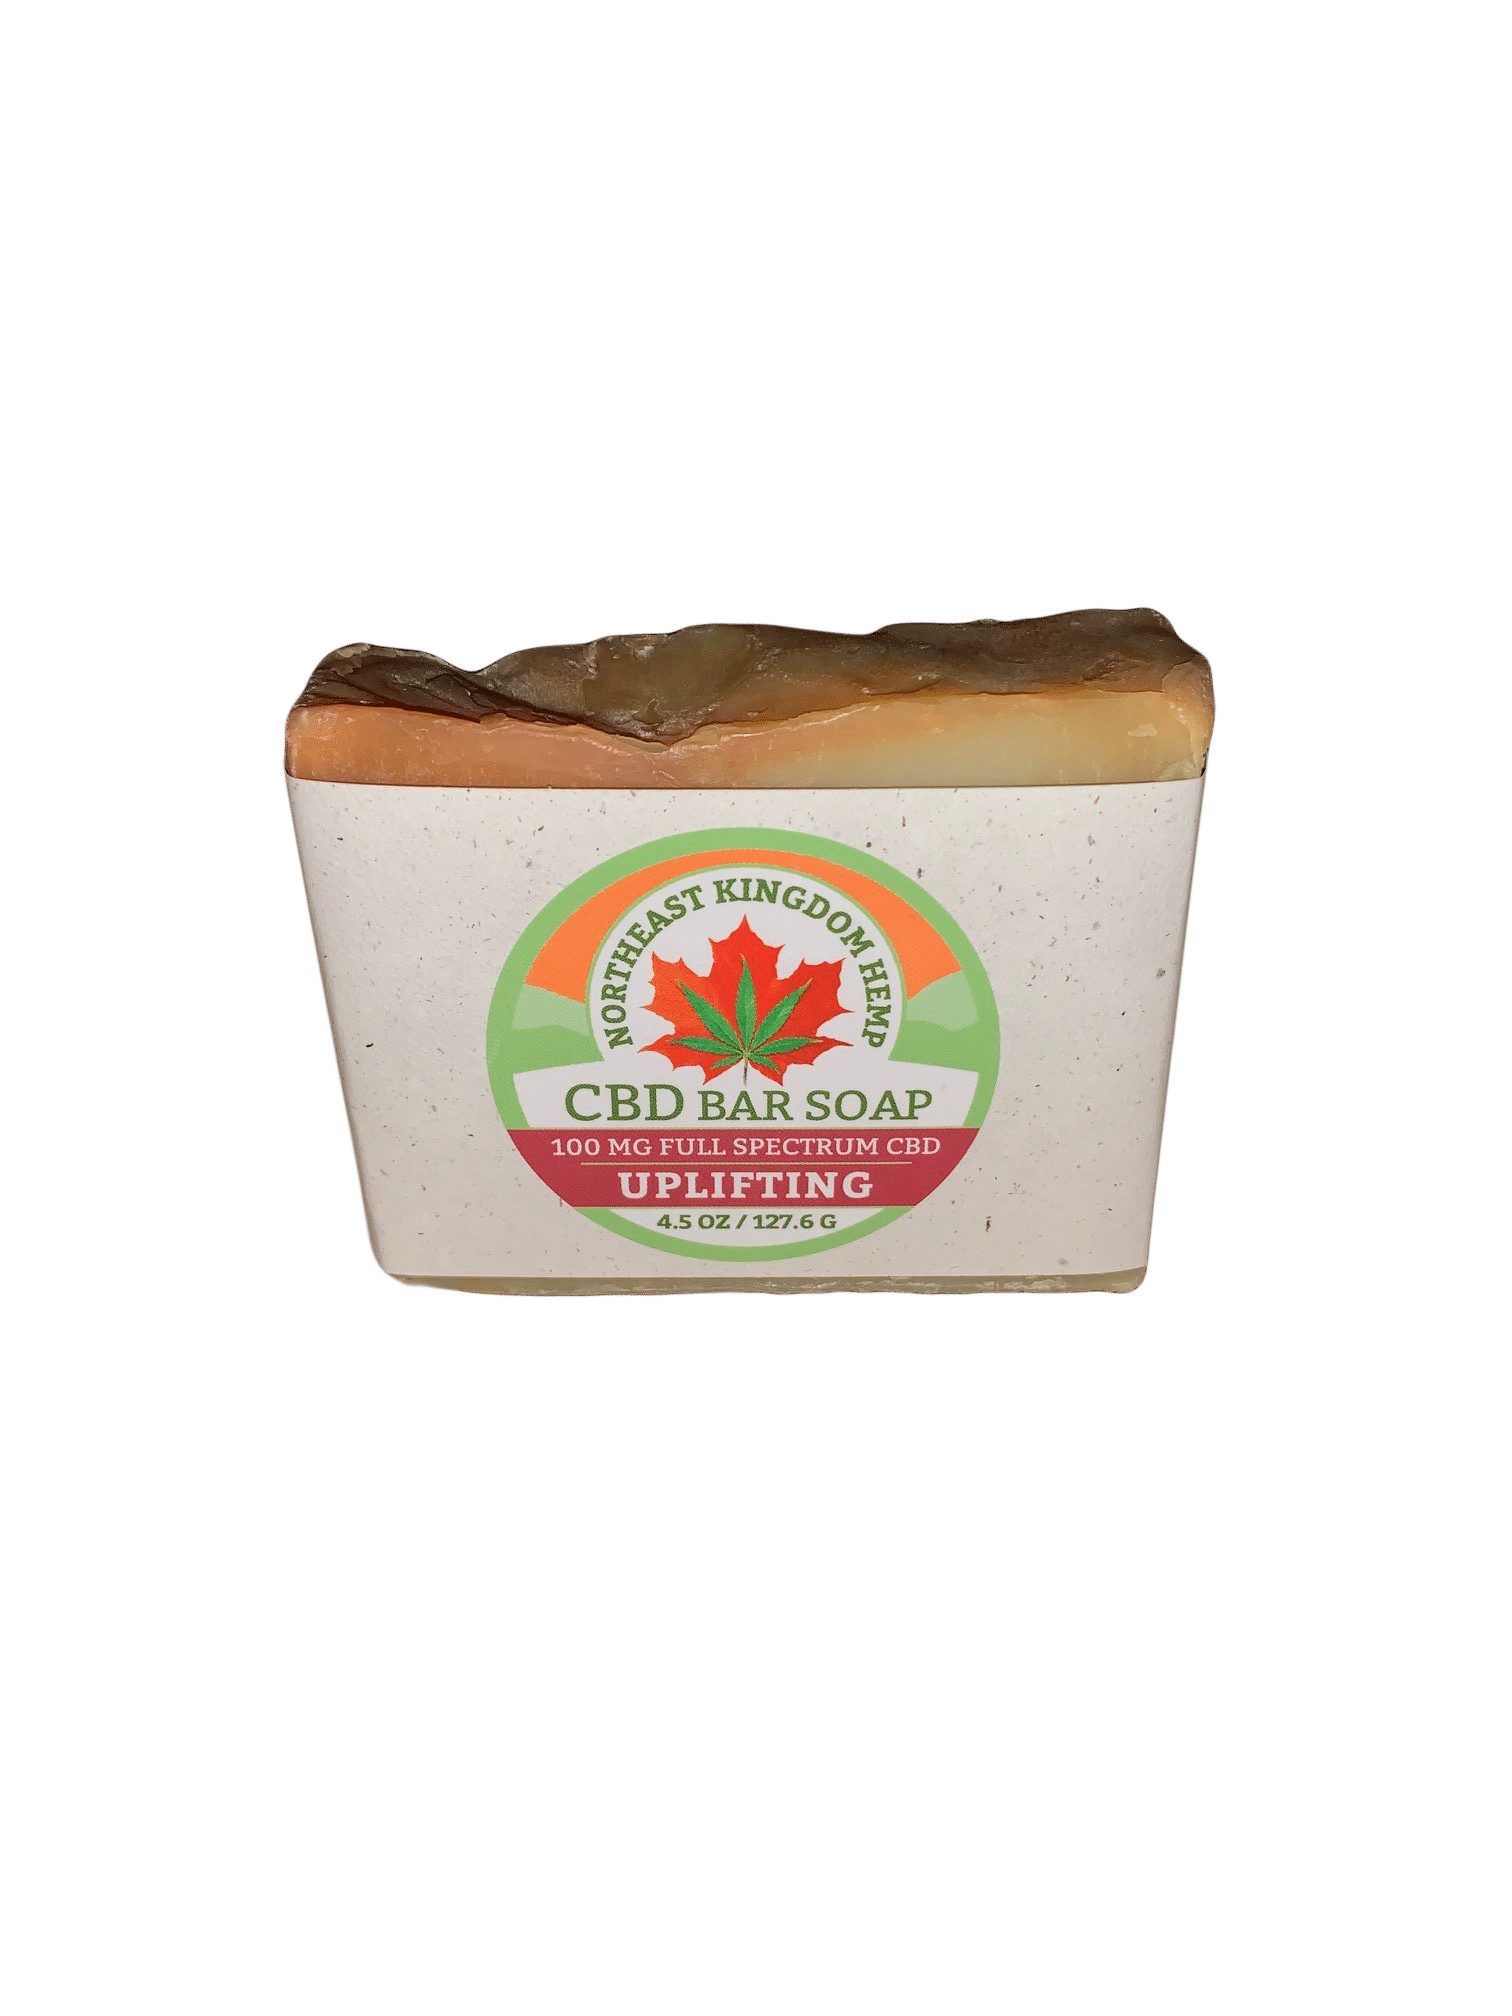 Northeast Kingdom Hemp - CBD bar soap - Barton, VT